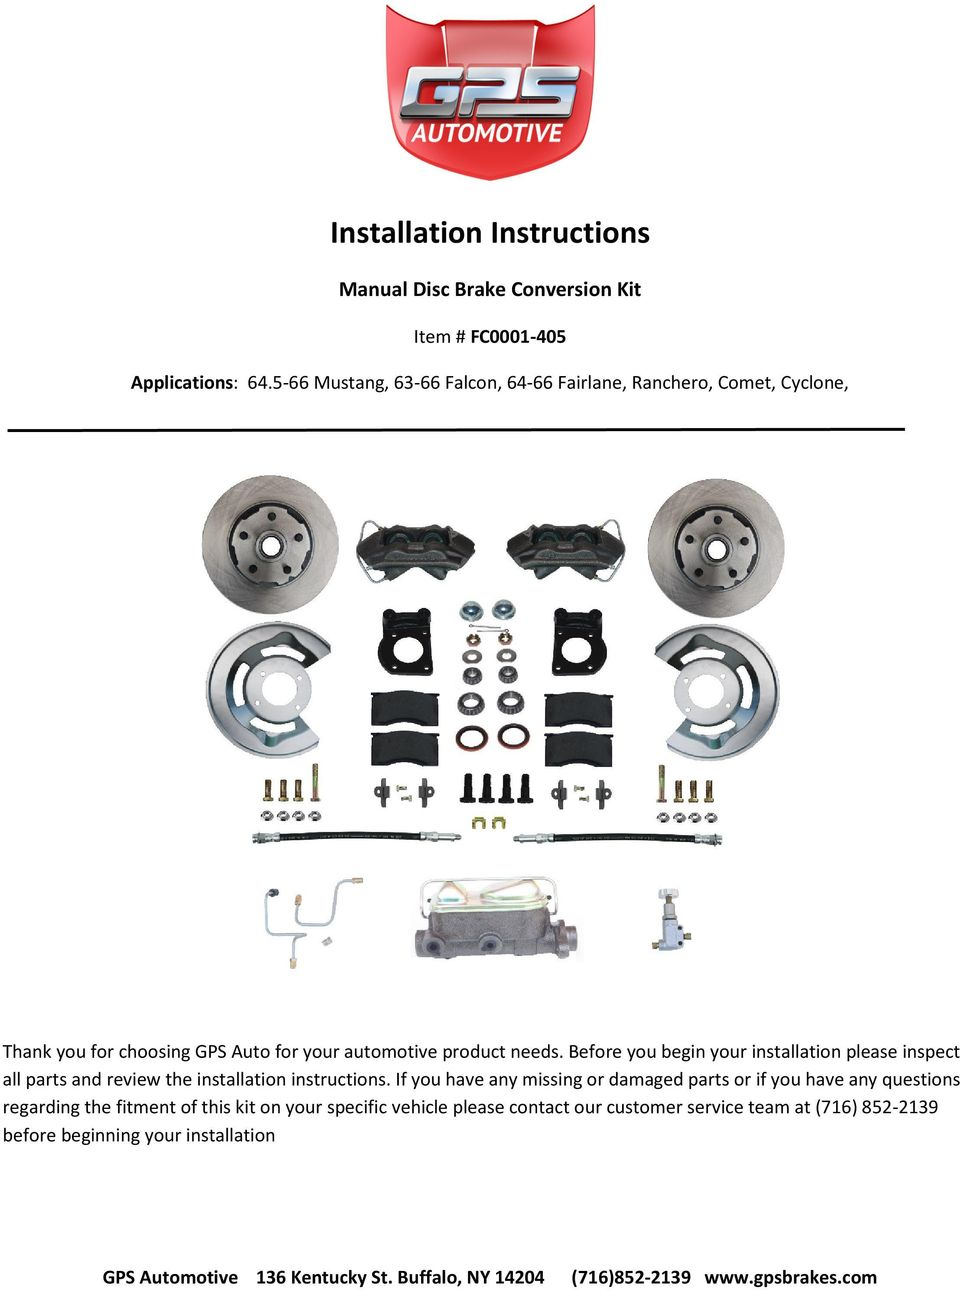 Before you begin your installation please inspect all parts and review the installation instructions.